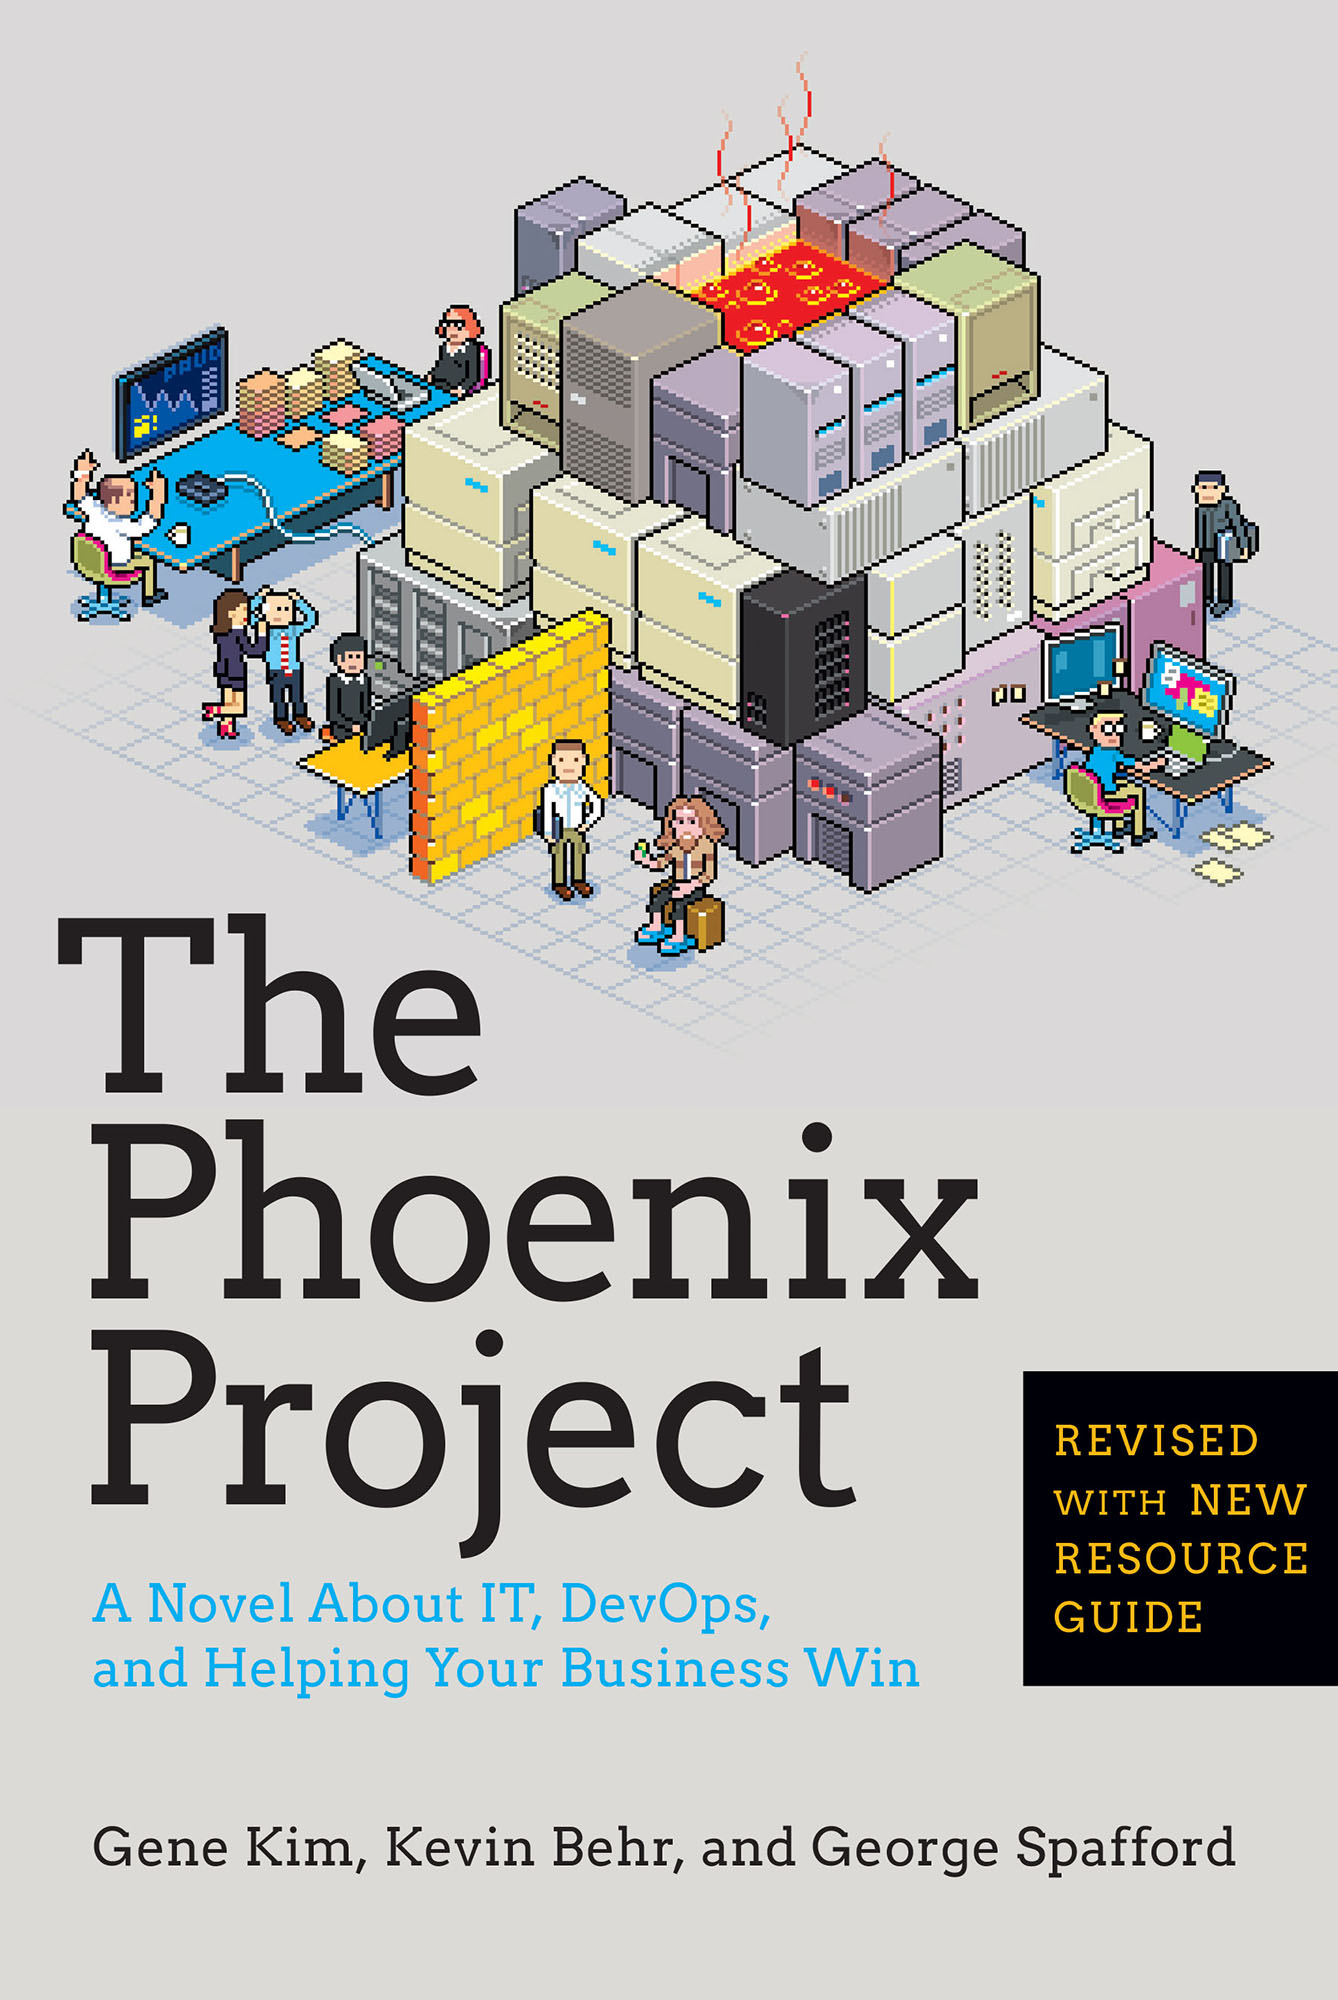 The Phoenix Project: Cover - The Phoenix Project [Book]